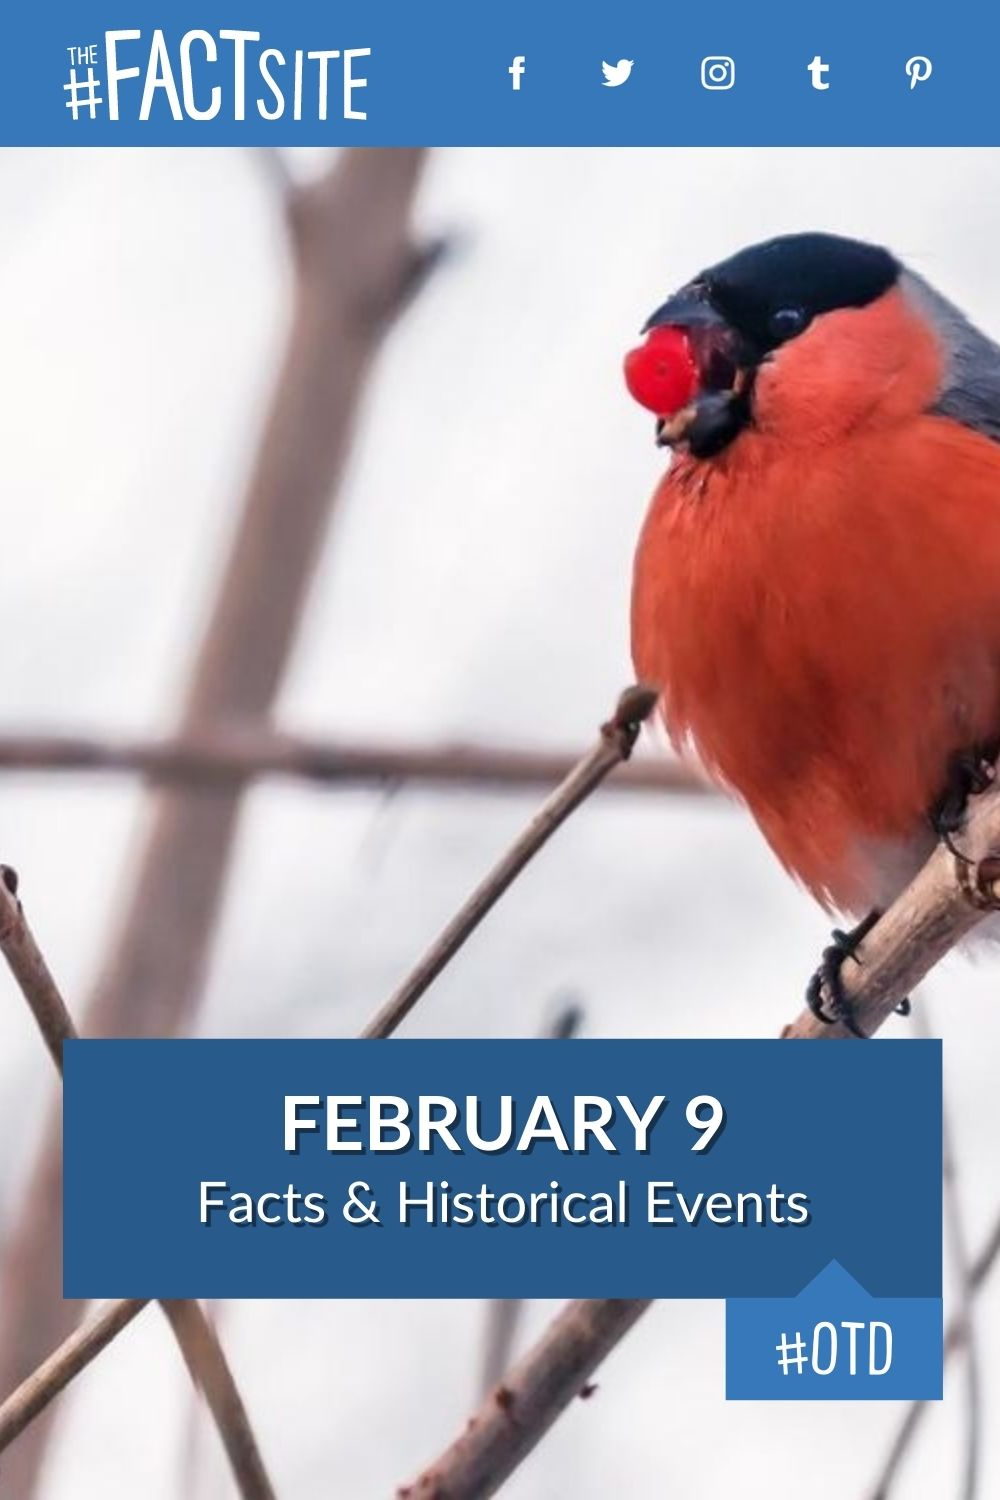 Facts & Historic Events That Happened on February 9